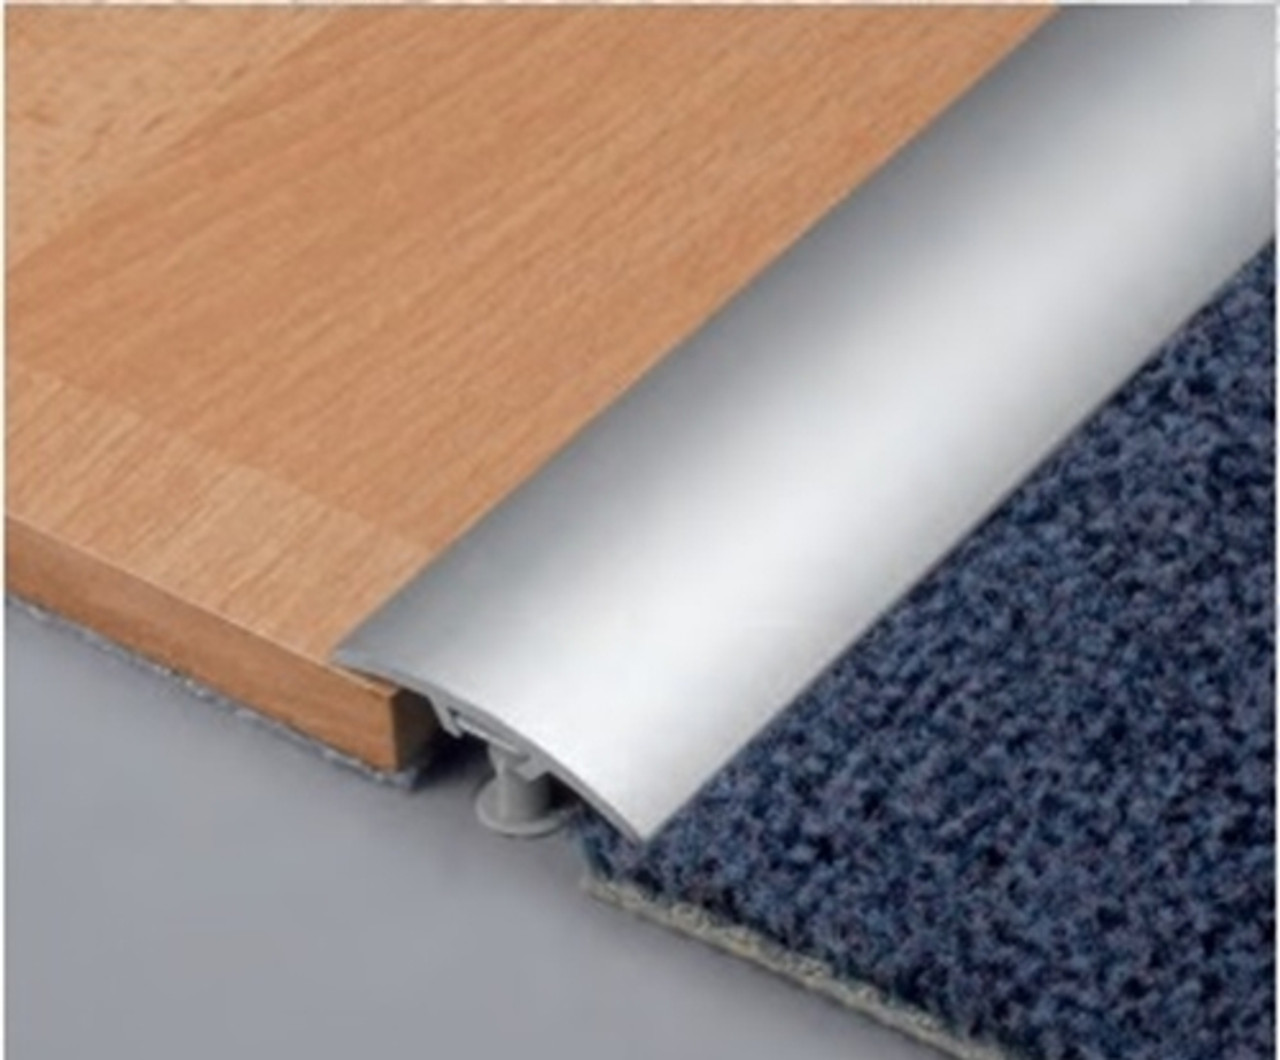 aluminium door threshold transition strips for 0 12mm difference in floor levels